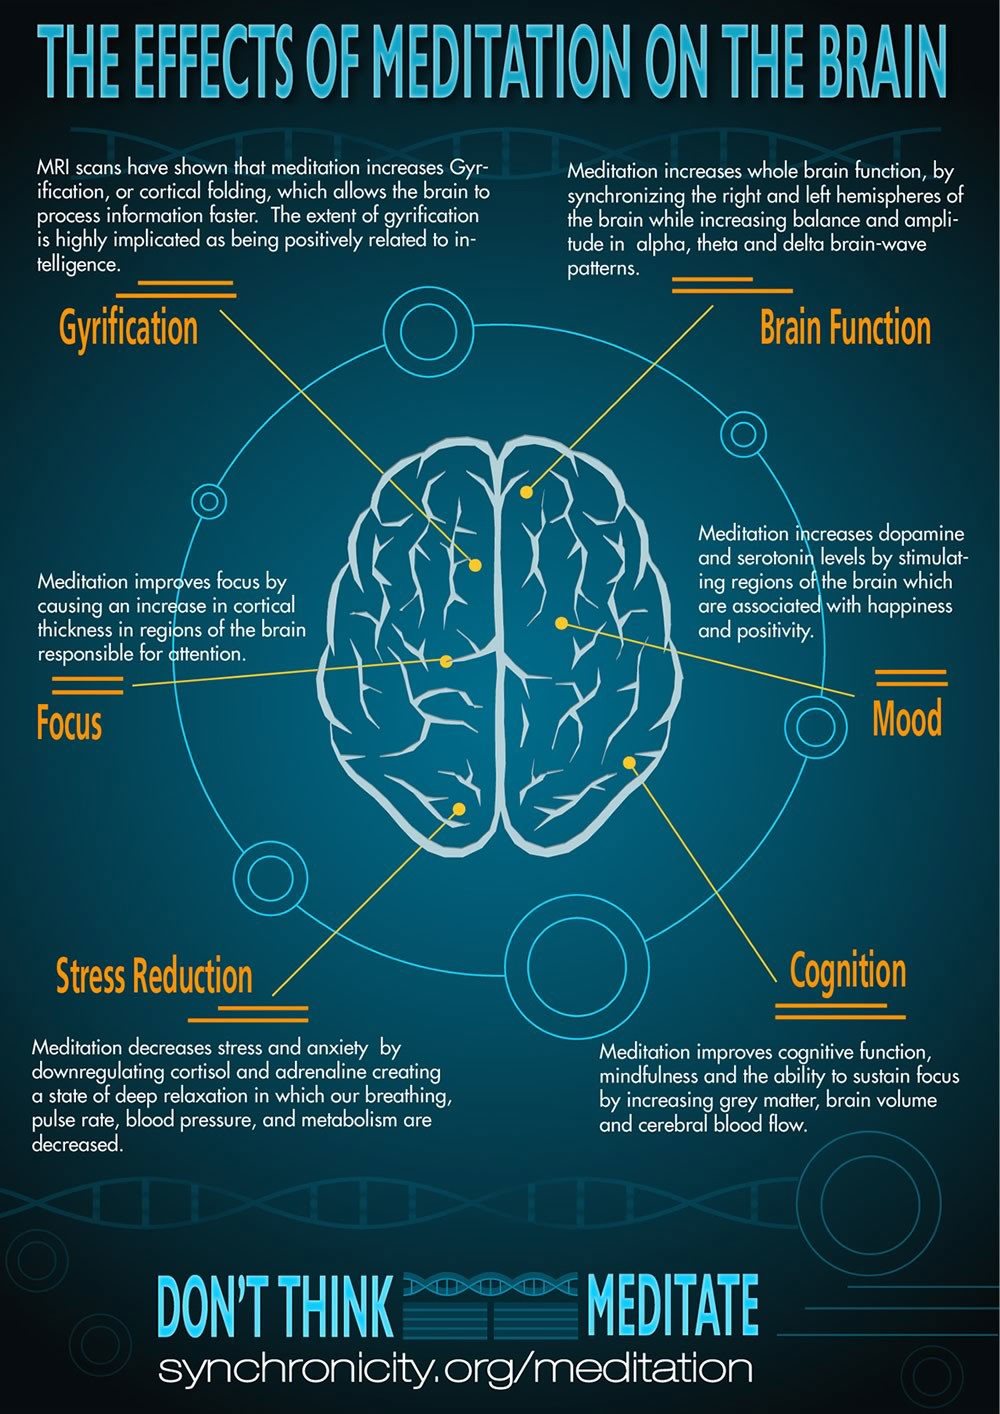 Effects of Meditation on the Brain